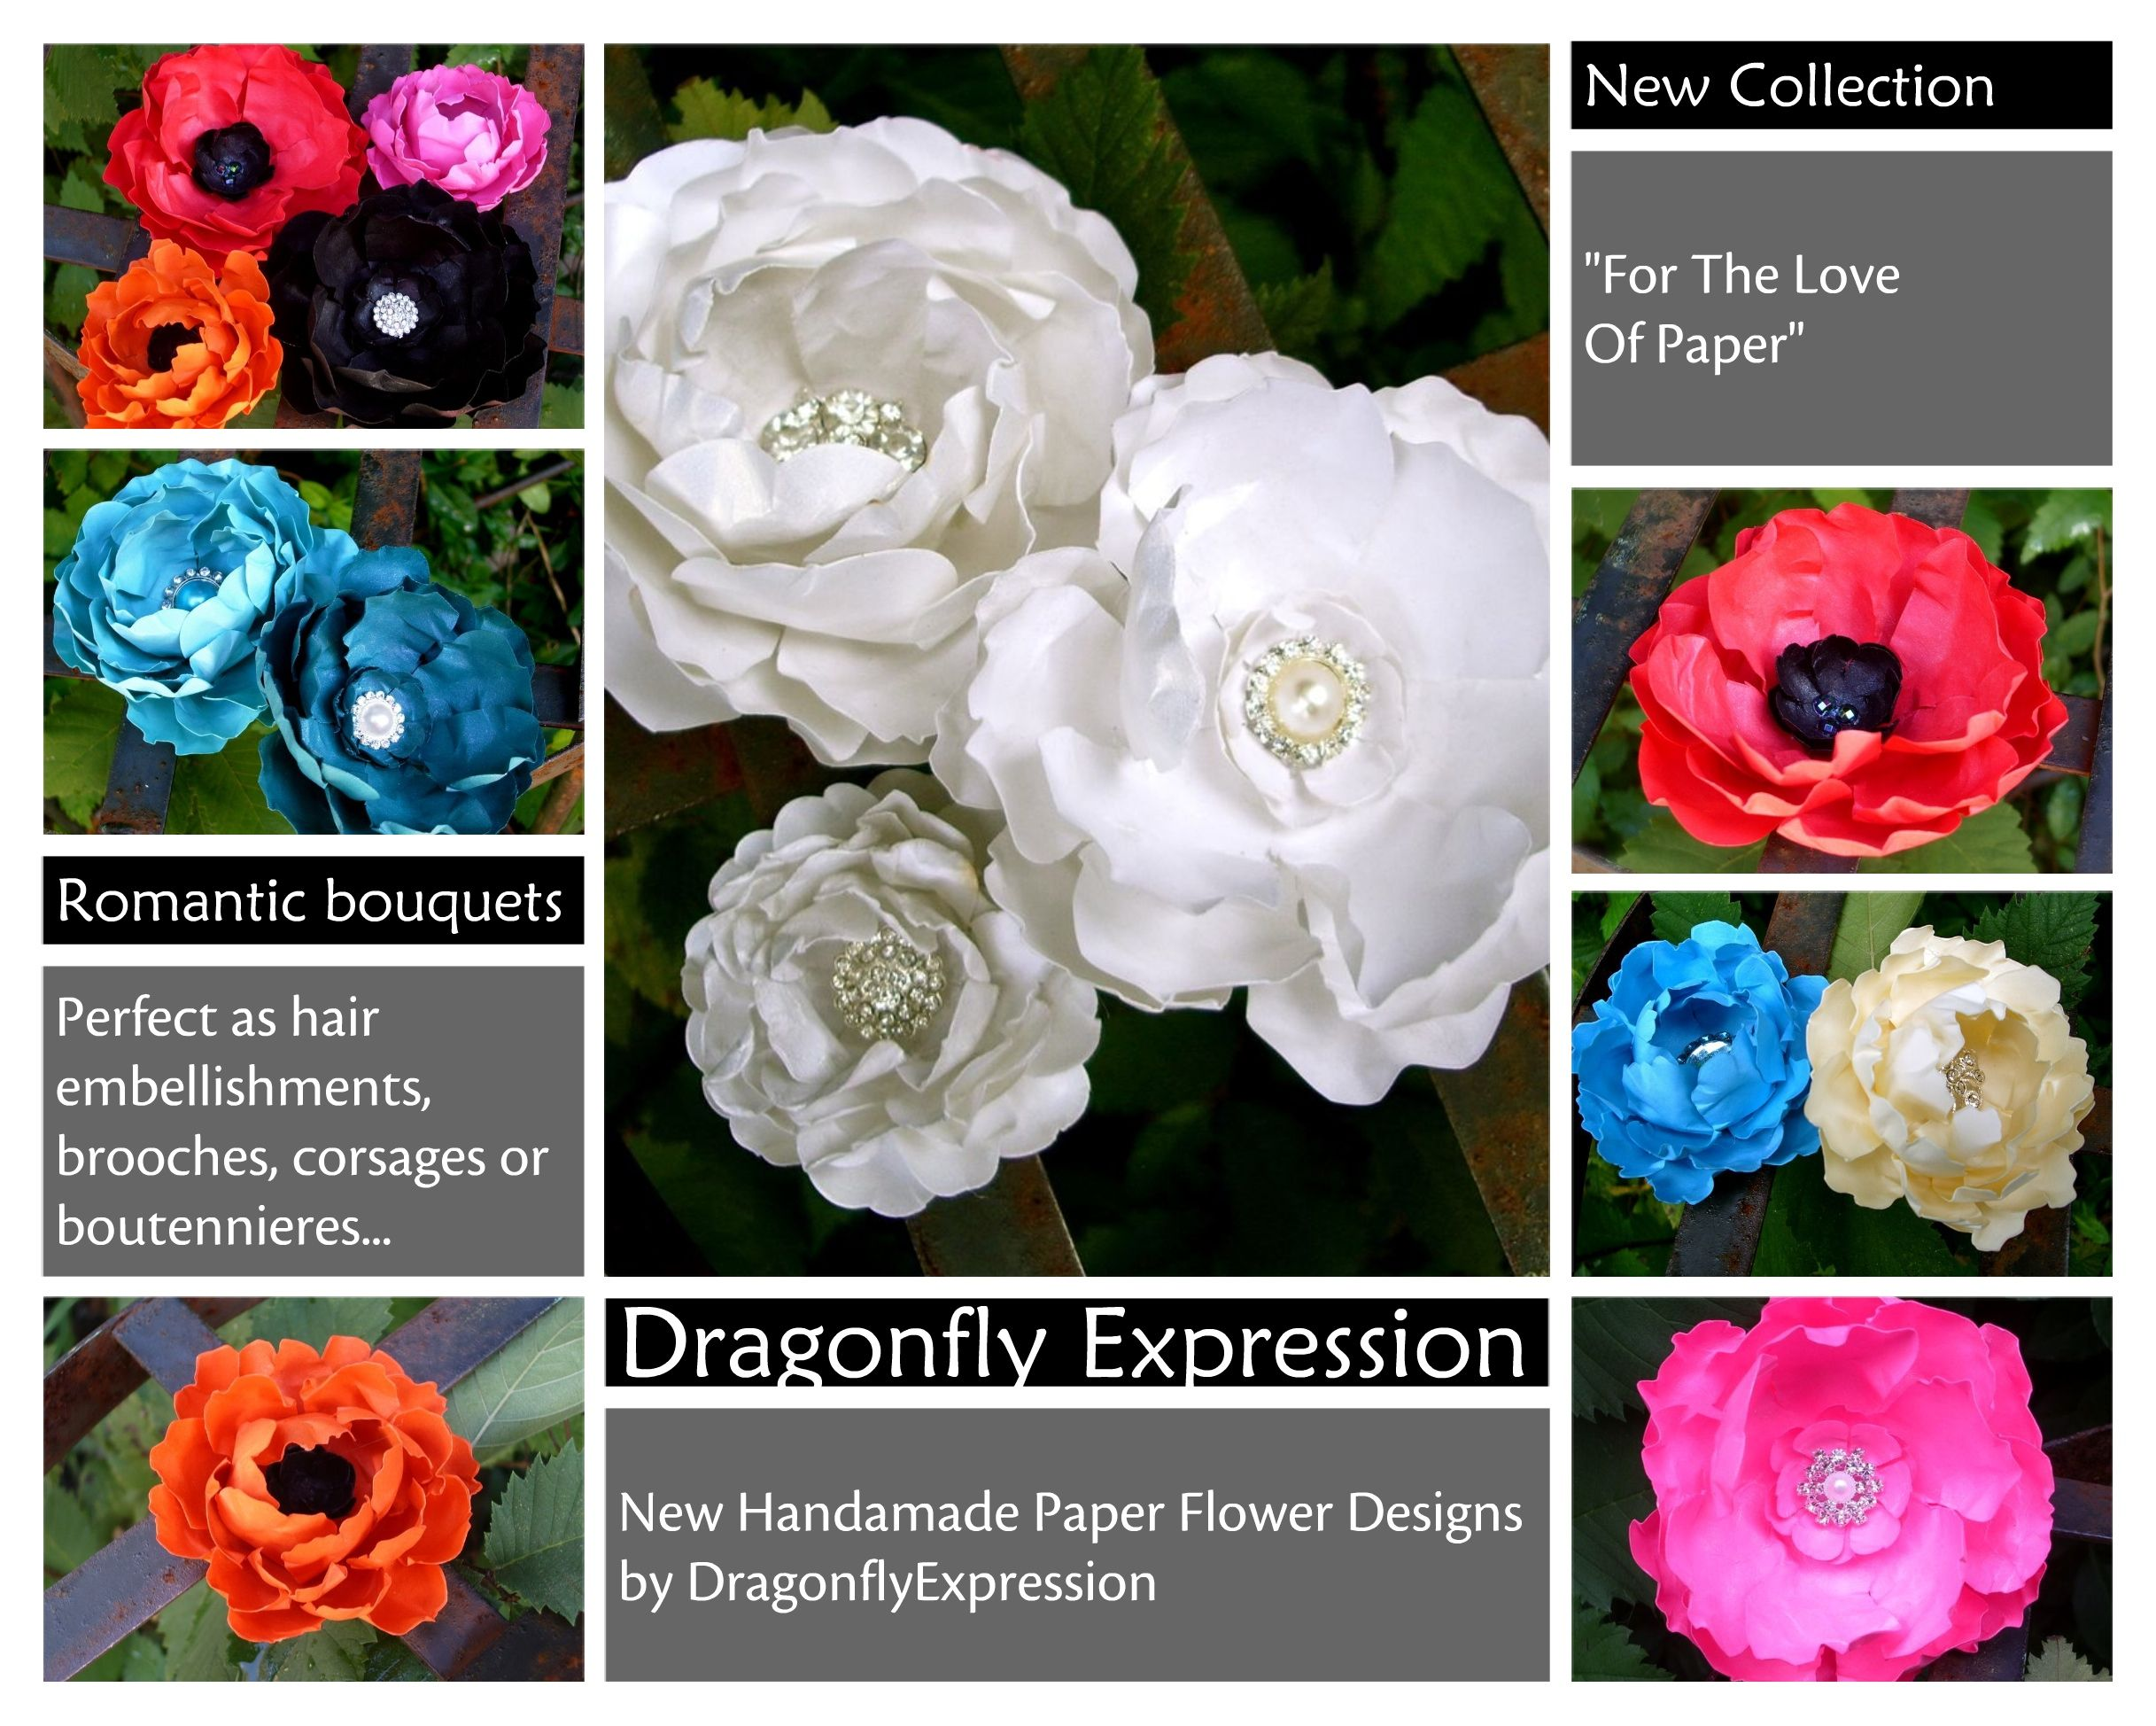 New Handmade Paper Flower Designs By Dragonflyexpression